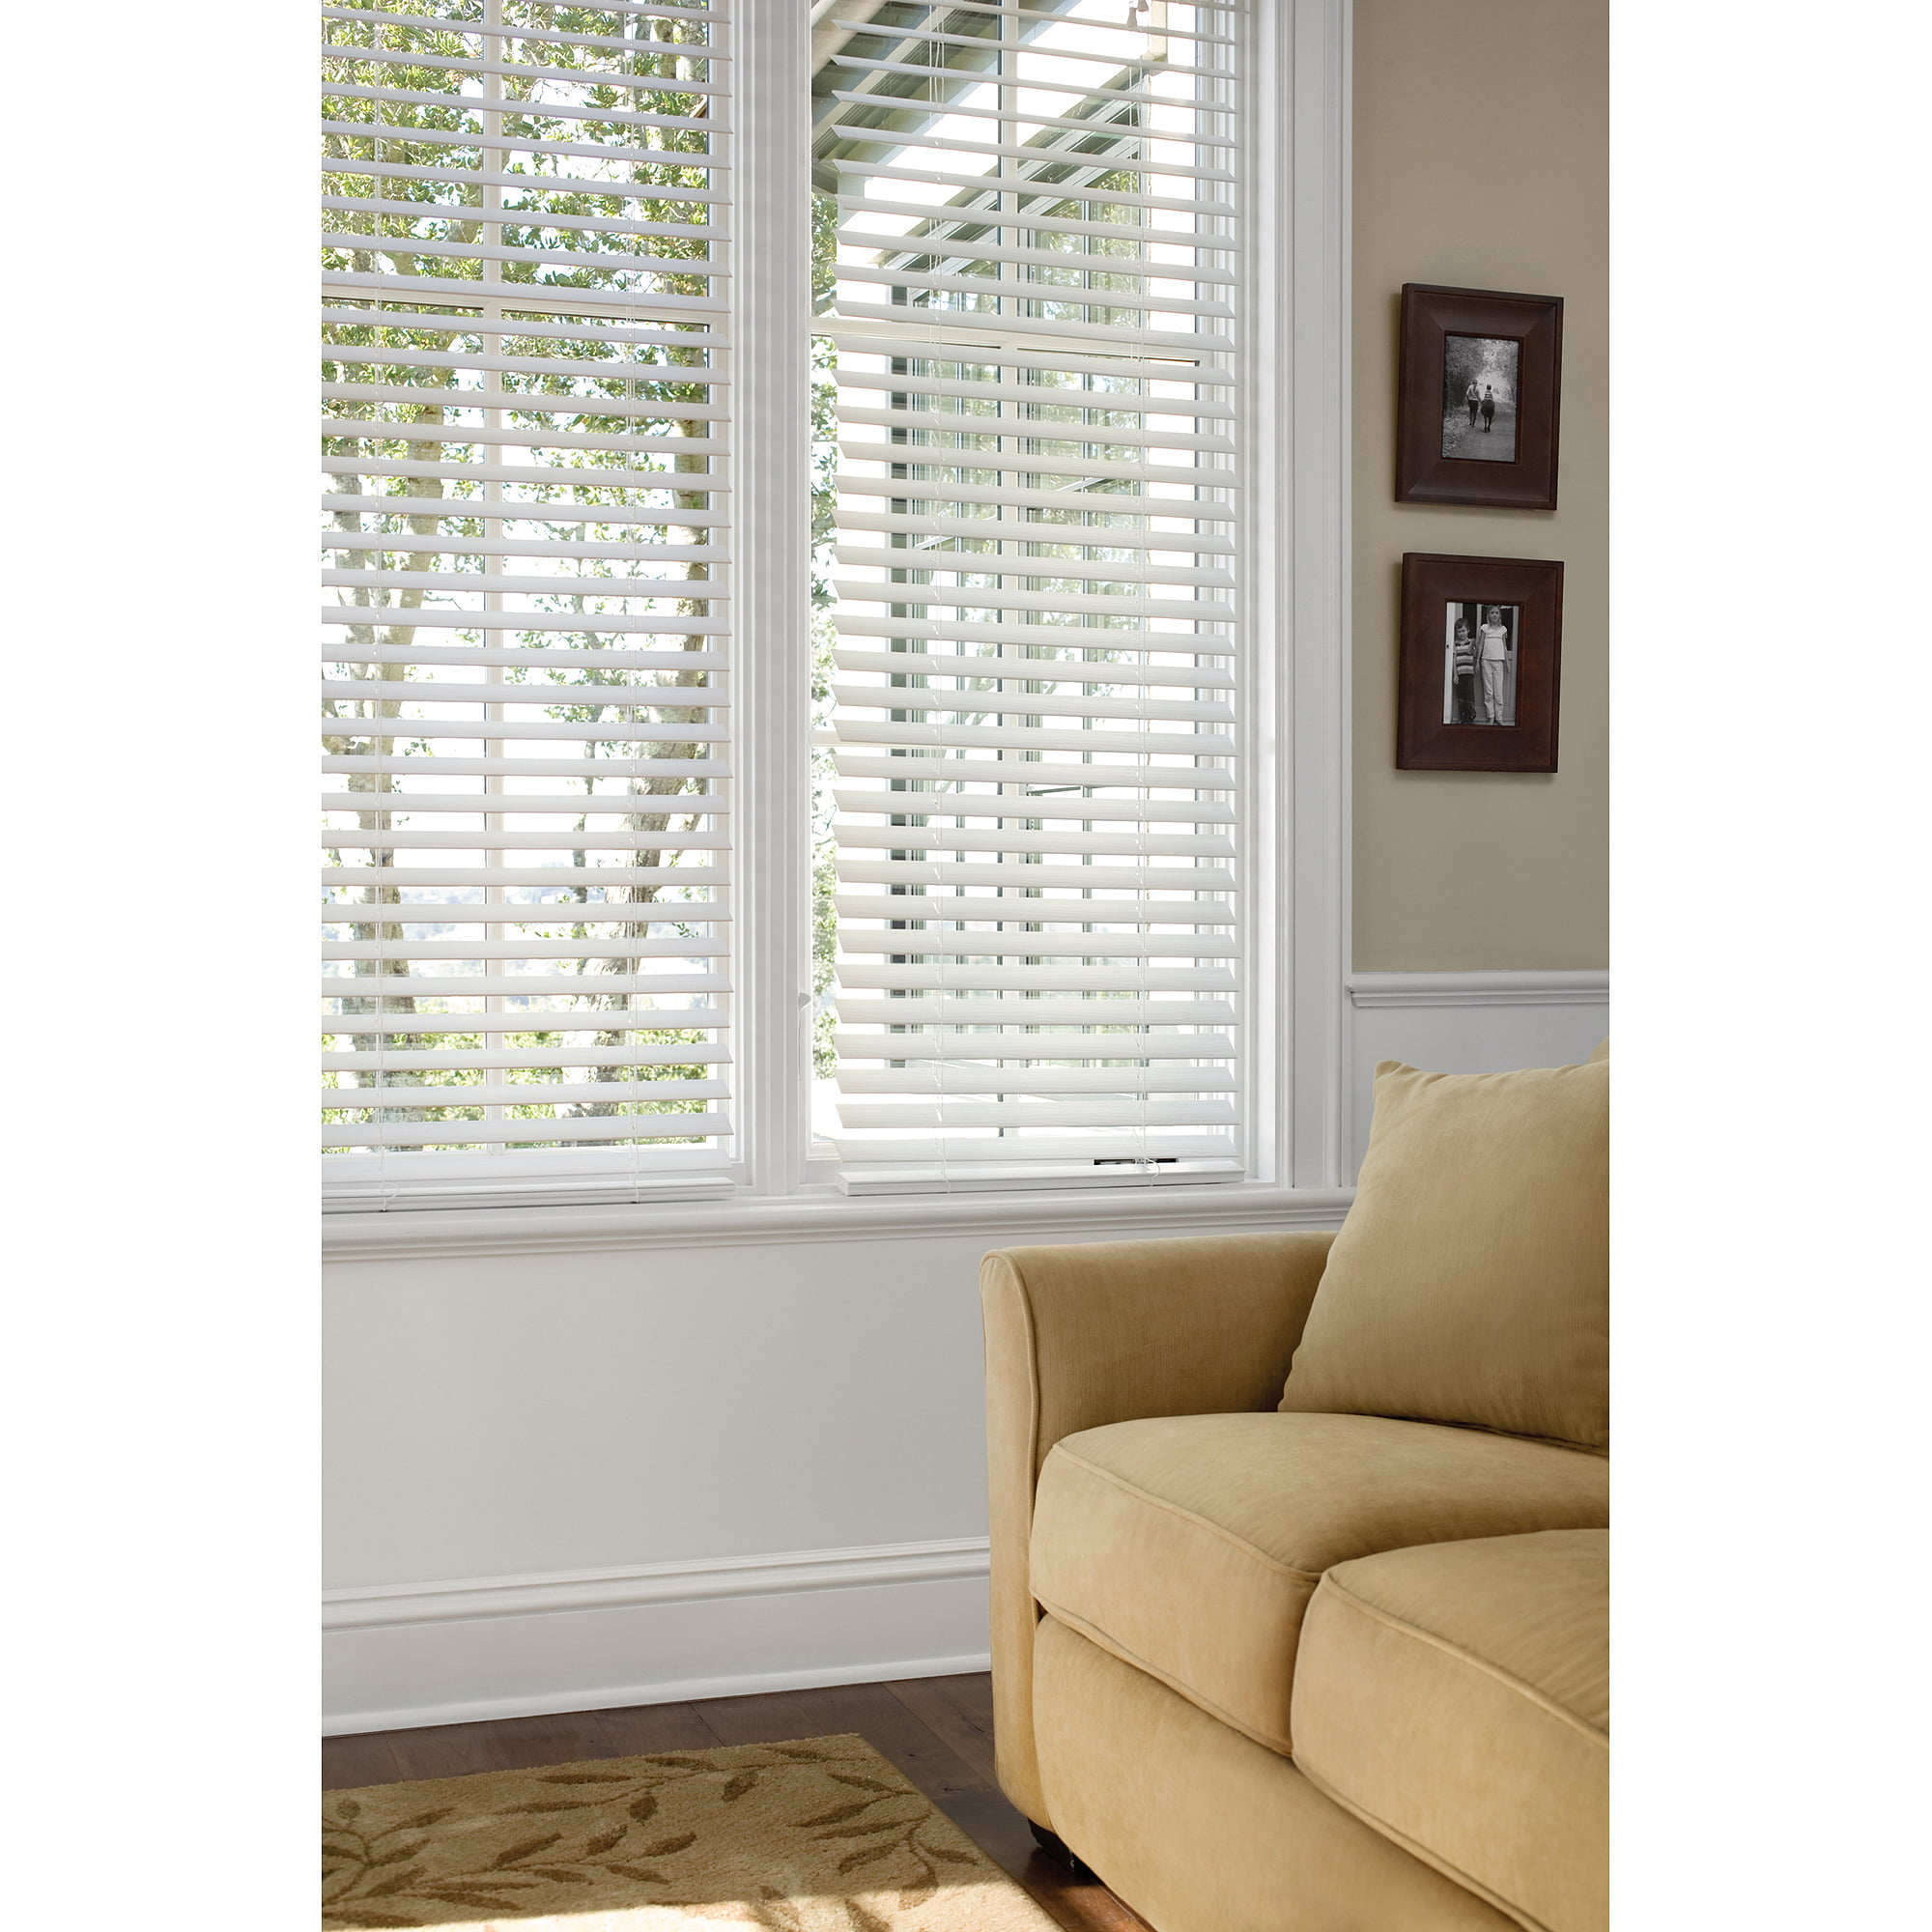 levolor shades best wood up honeycomb vinyl mini depot home walmart blinds for blackou cheap faux outdoor with lowes windows window at roll